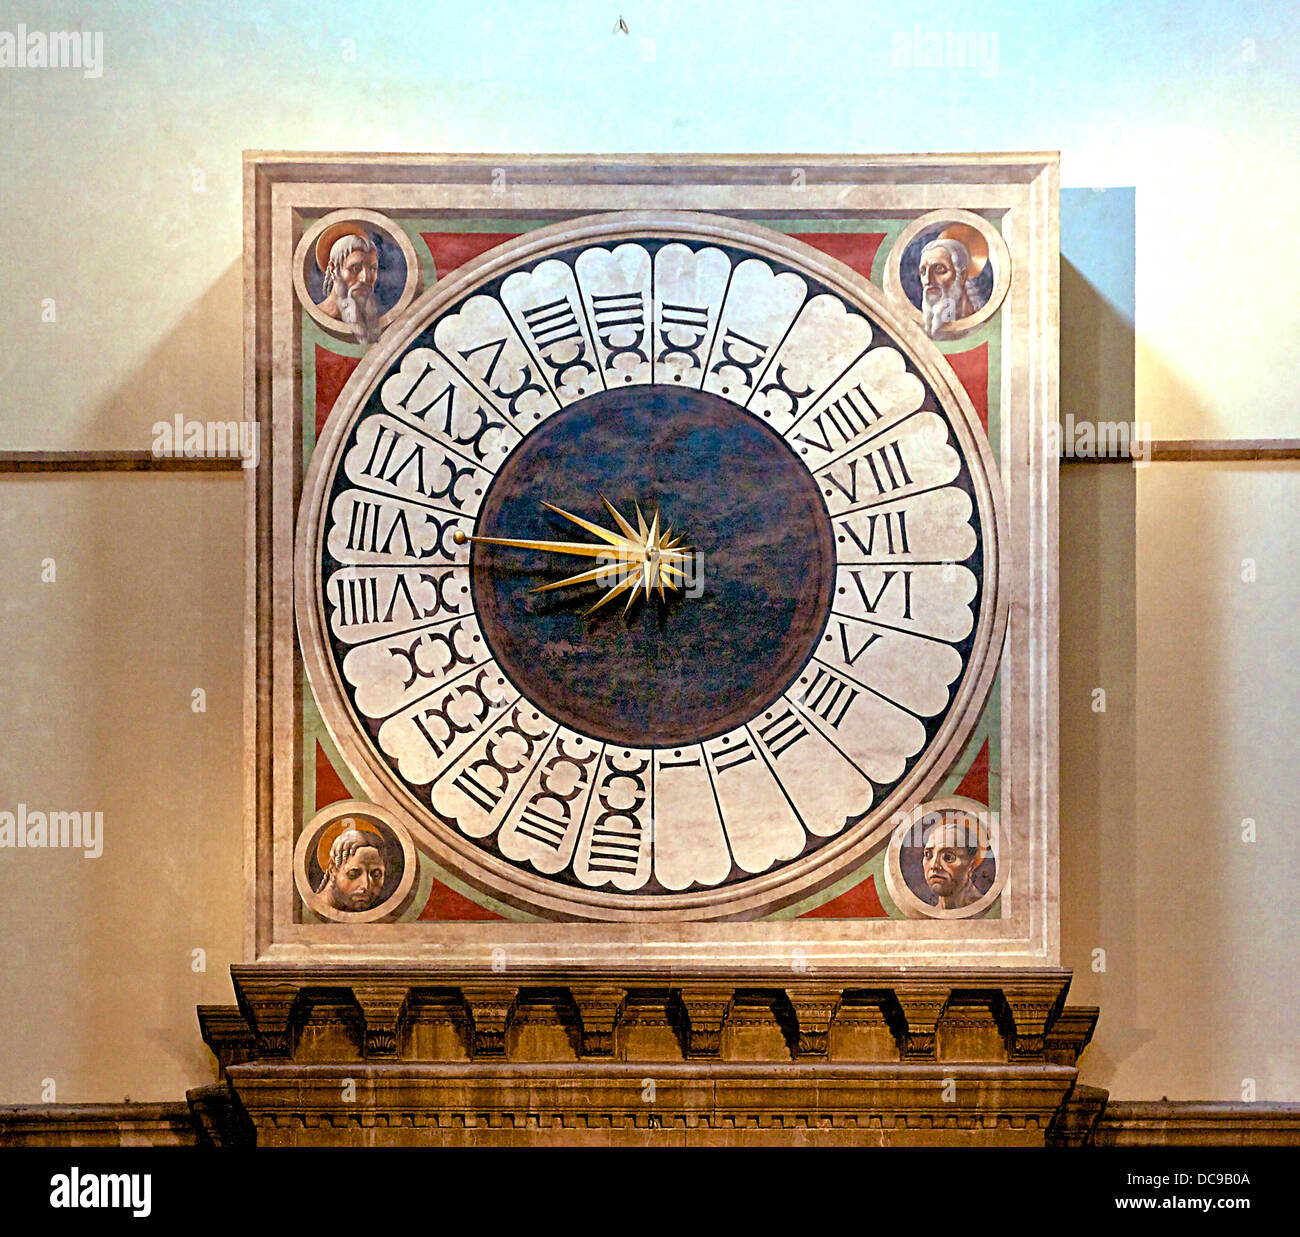 Clock 24 hours Florence Cathedral - Stock Image